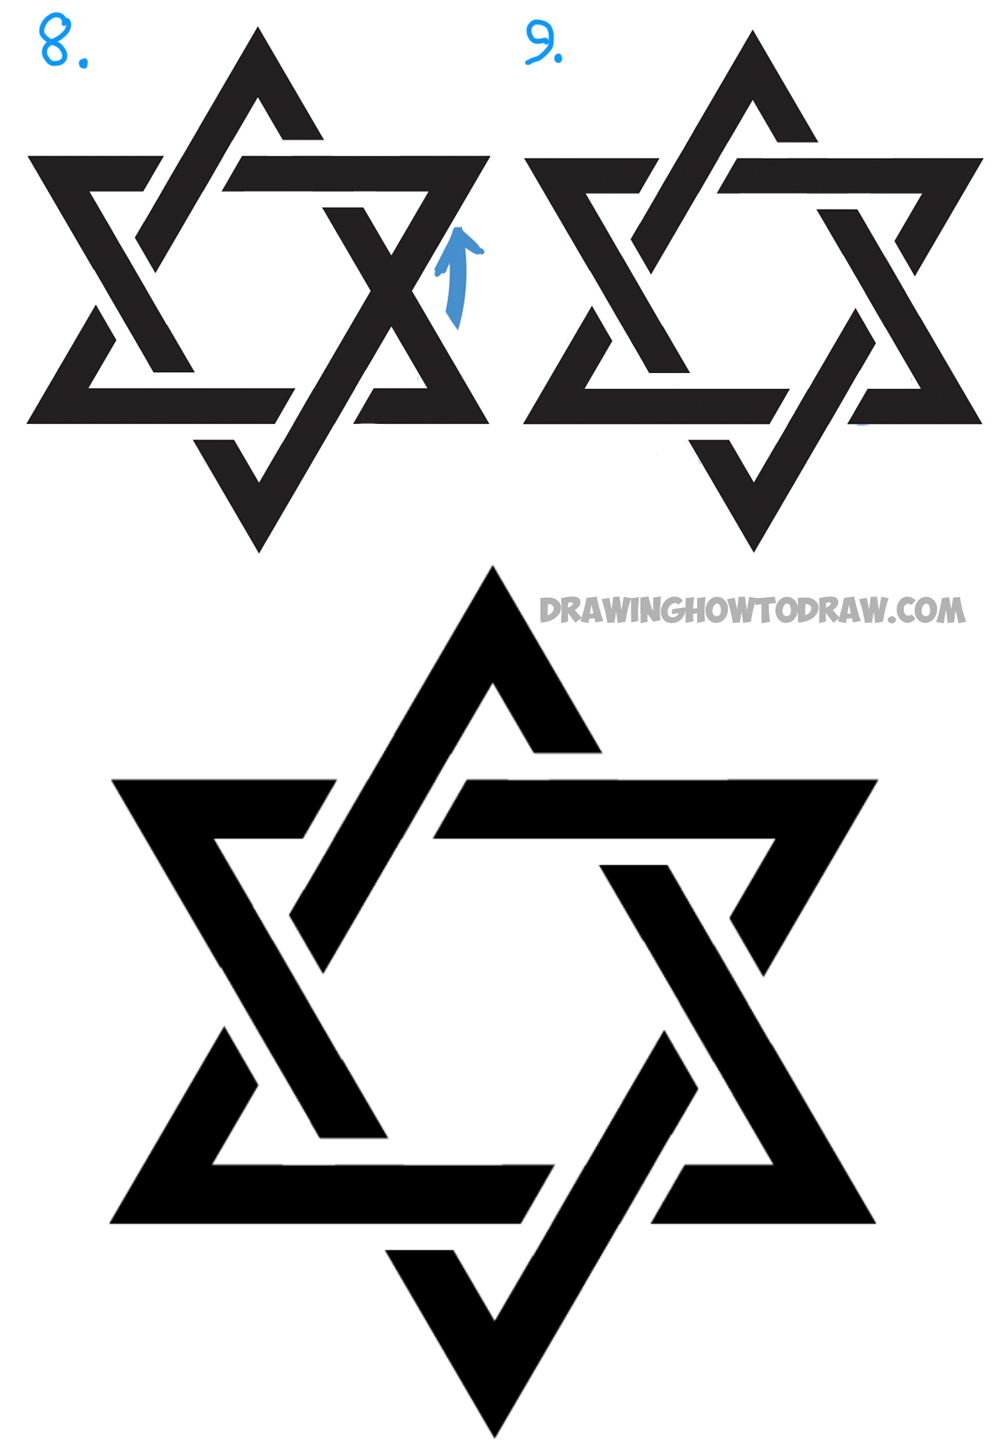 How To Draw The Star Of David The Jewish Star With Easy Steps